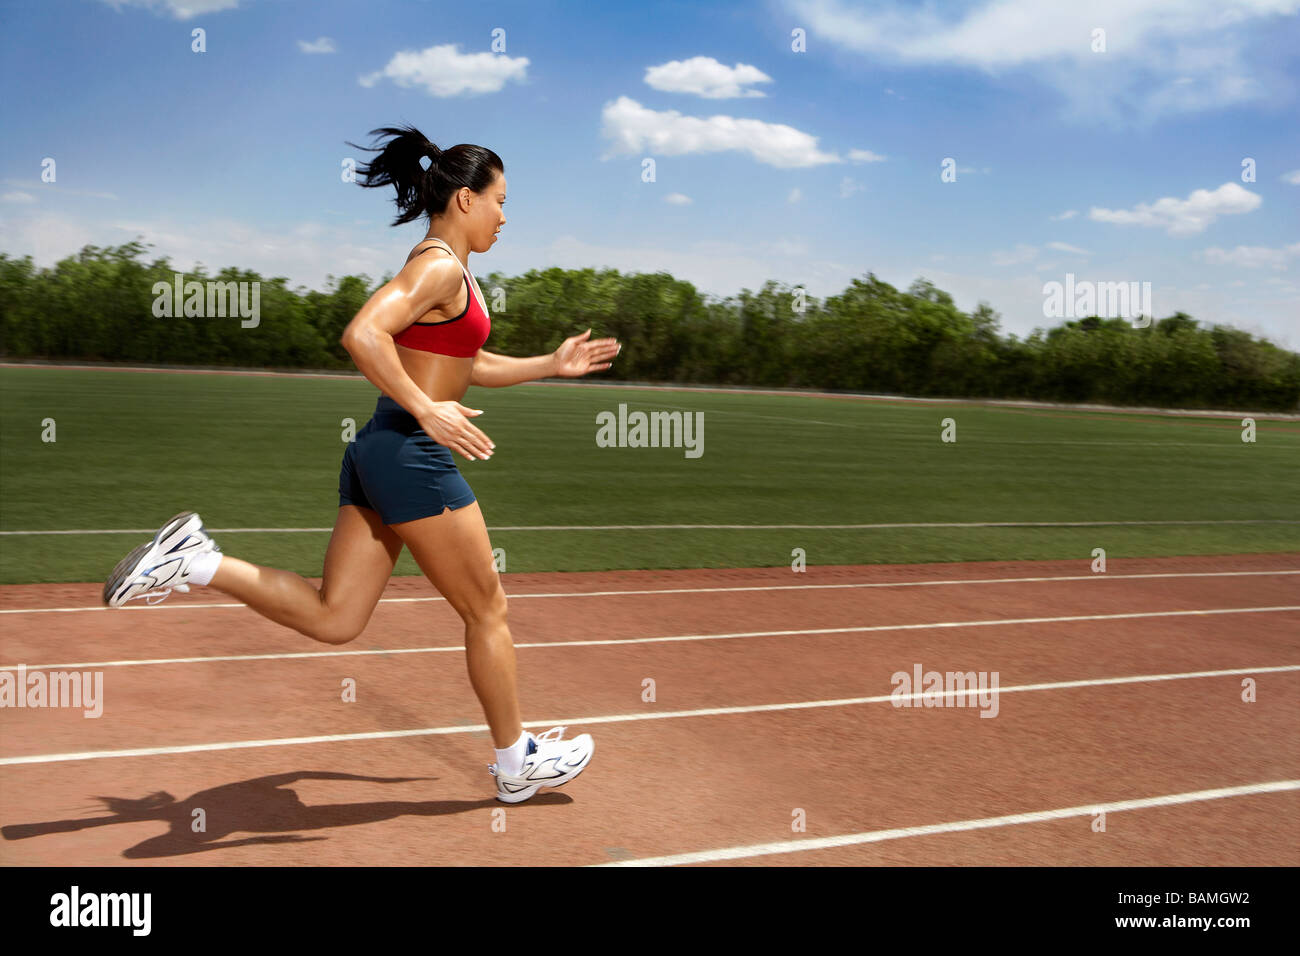 Athlete Running Track - Stock Image